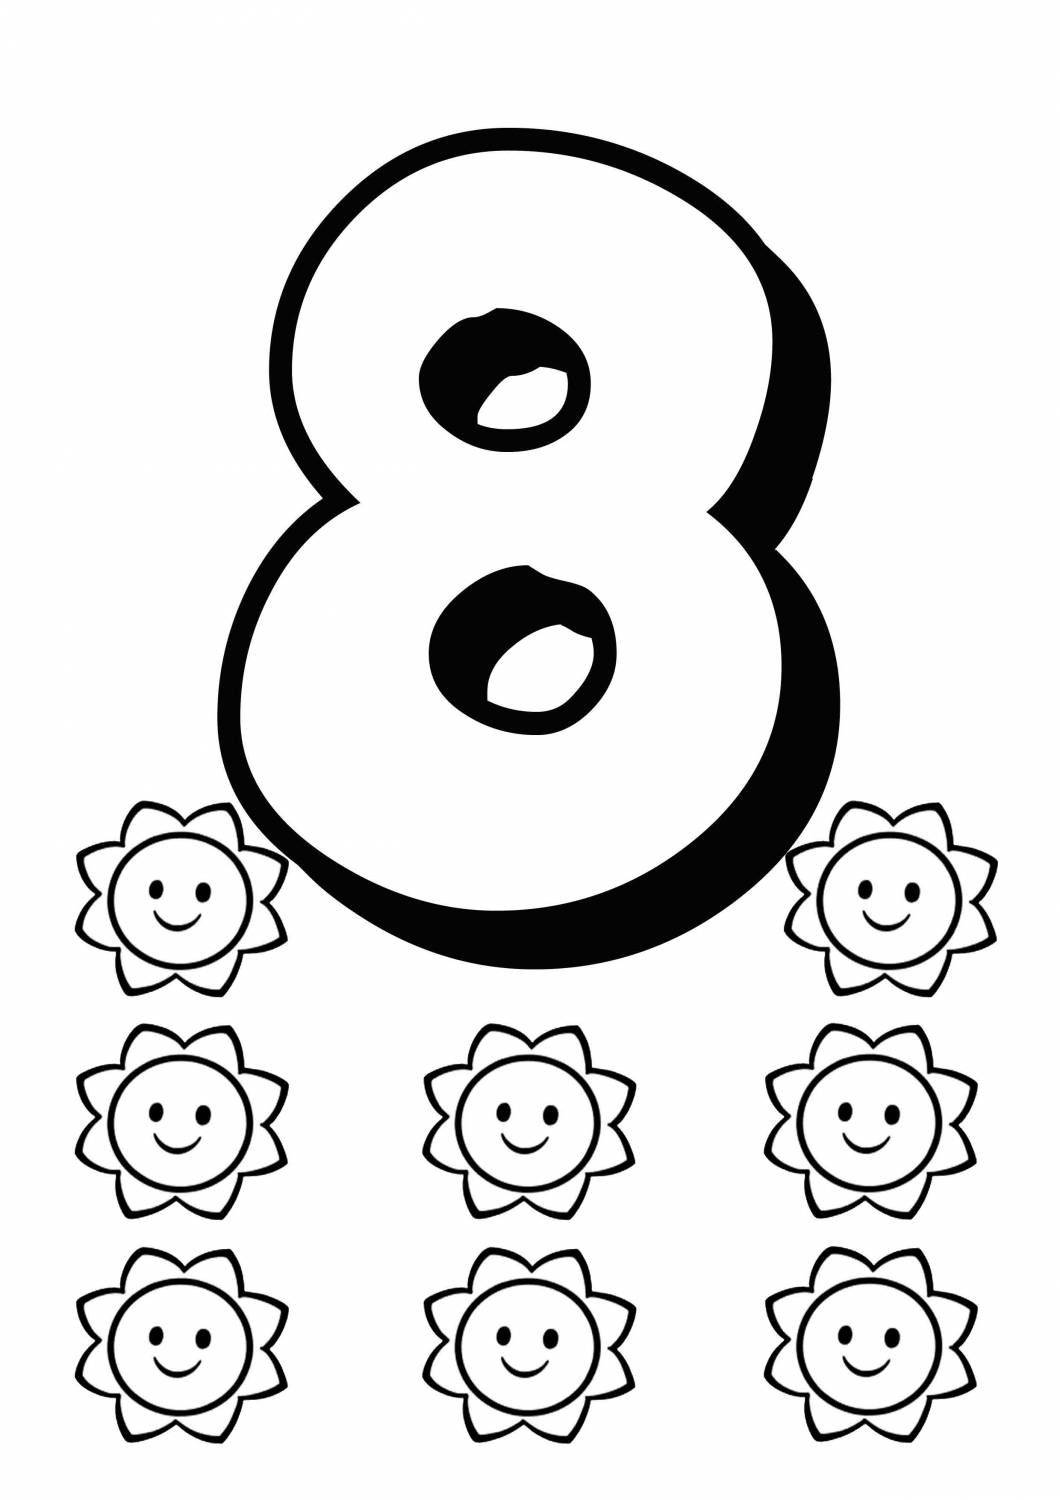 Numbers Coloring Pages for kids